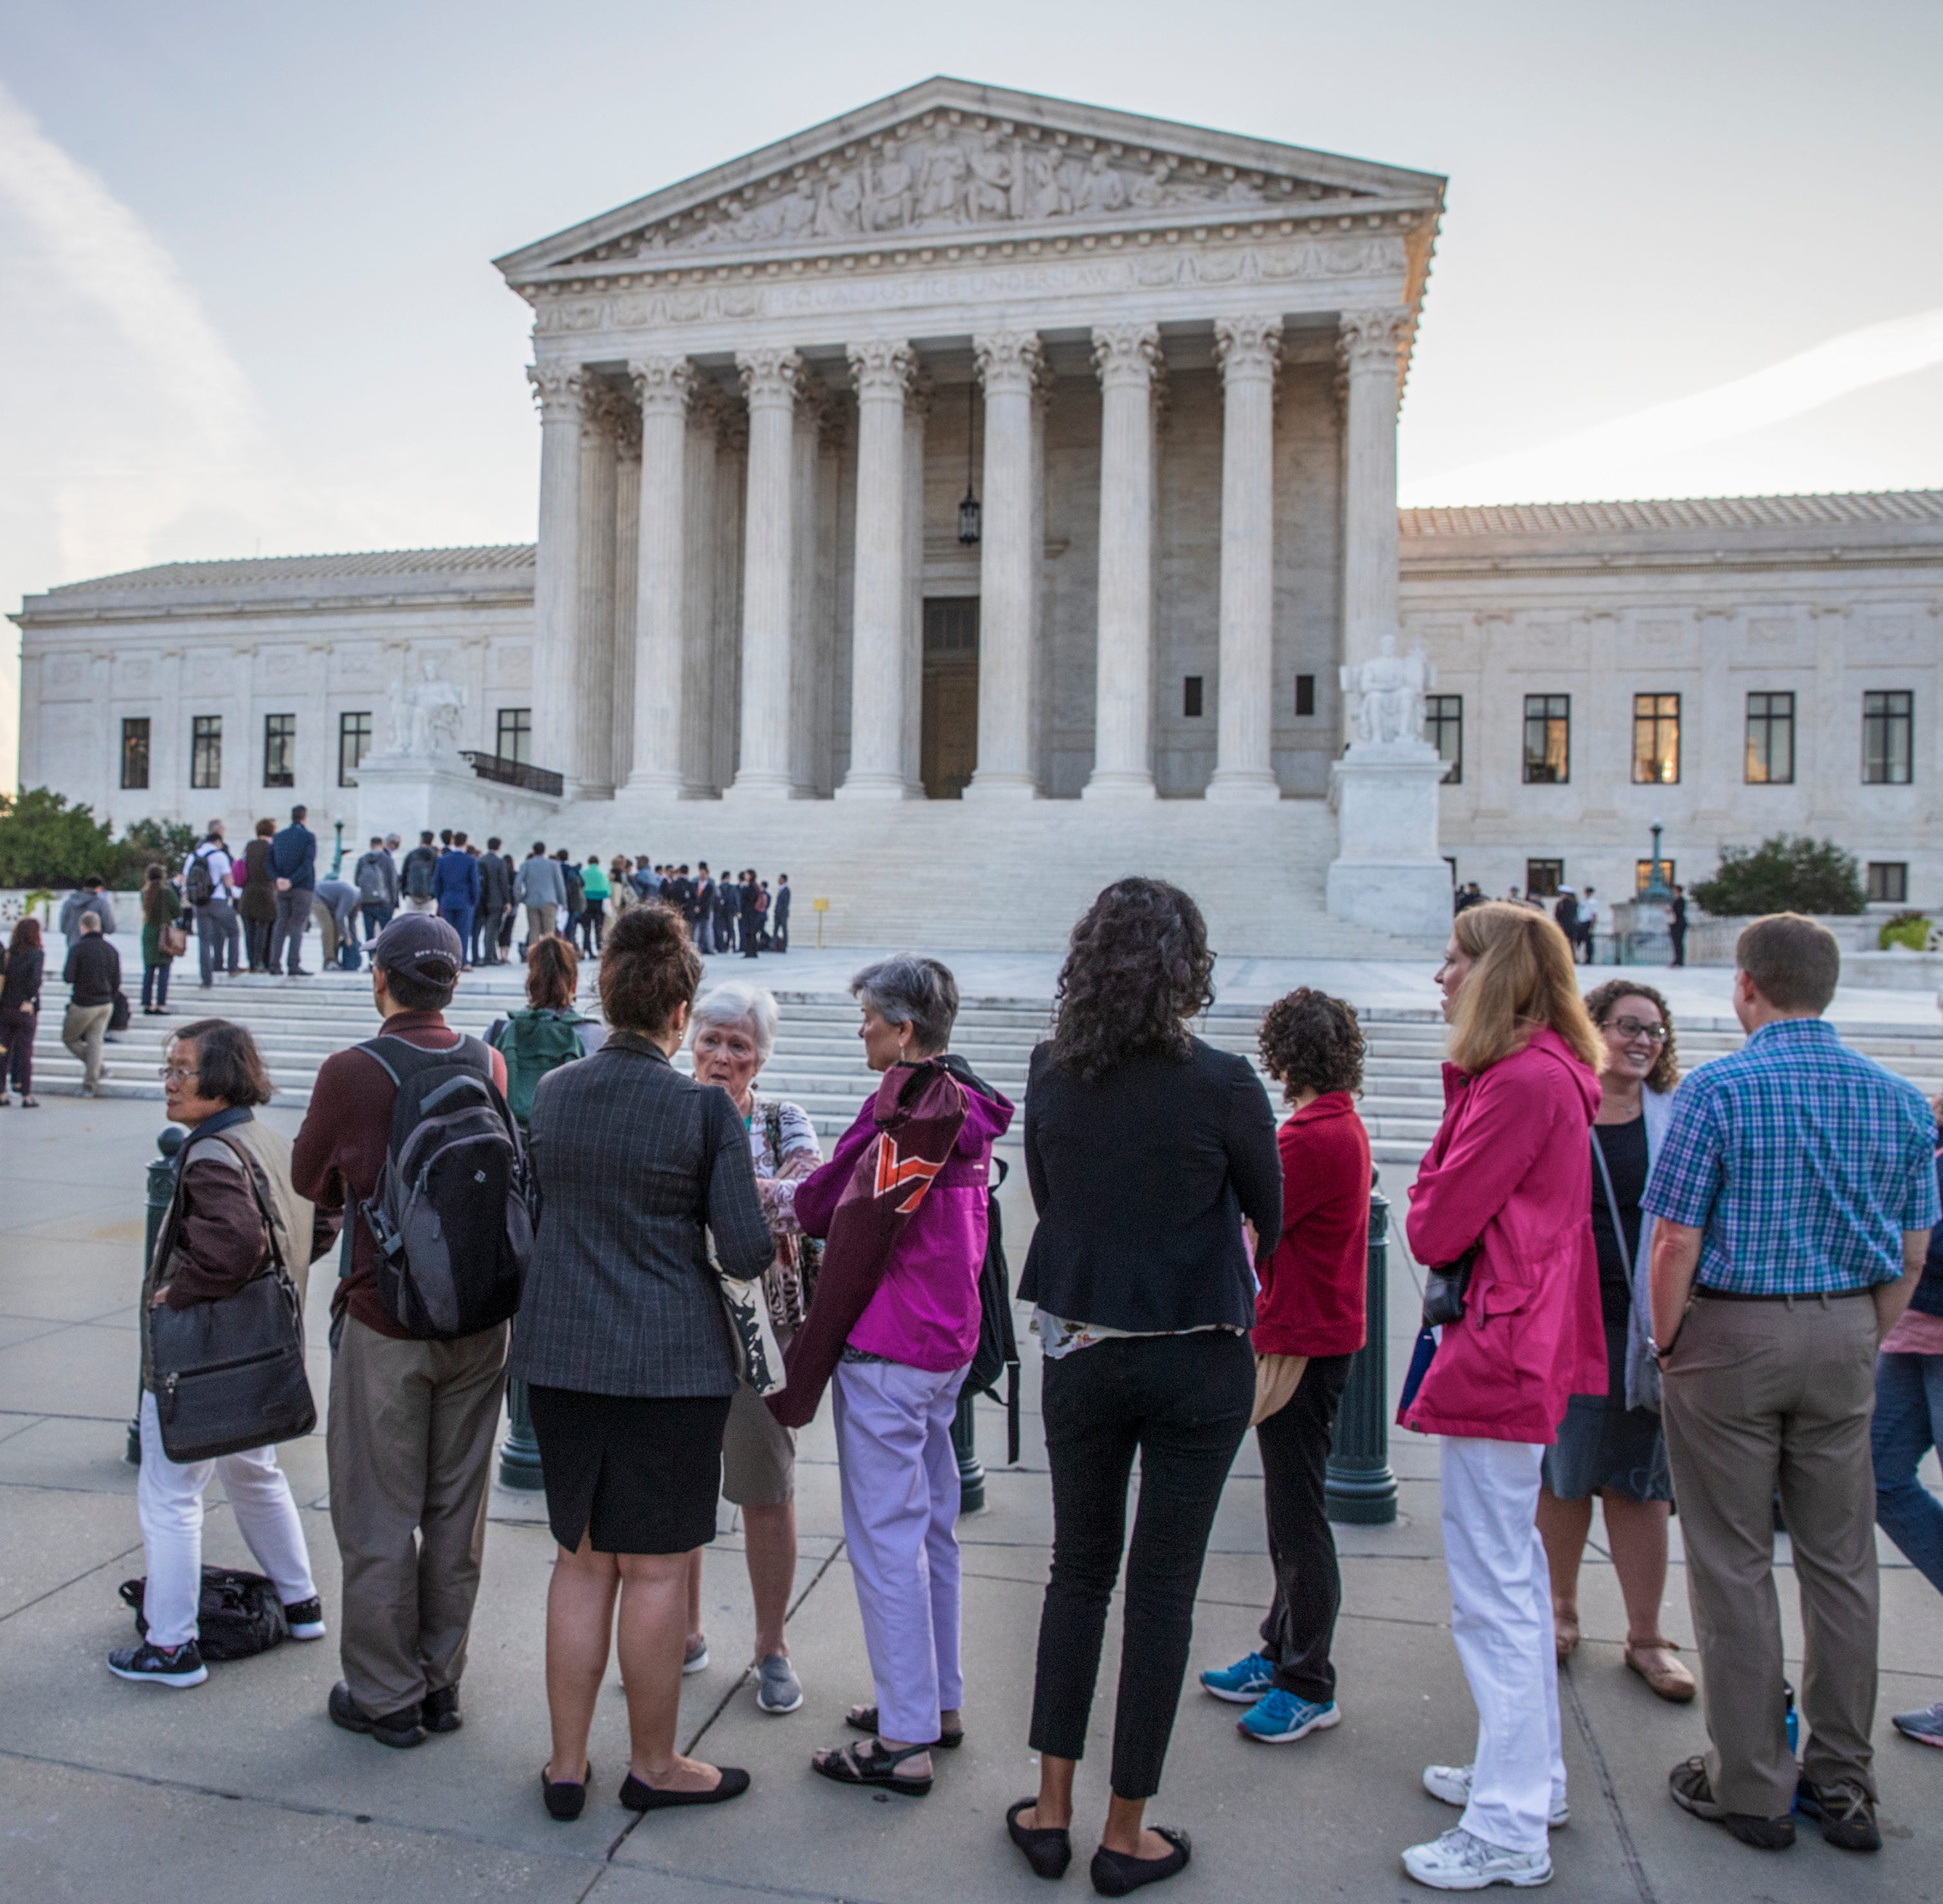 The Supreme Court will weigh in on the subject of workplace discrimination against gays and lesbians.